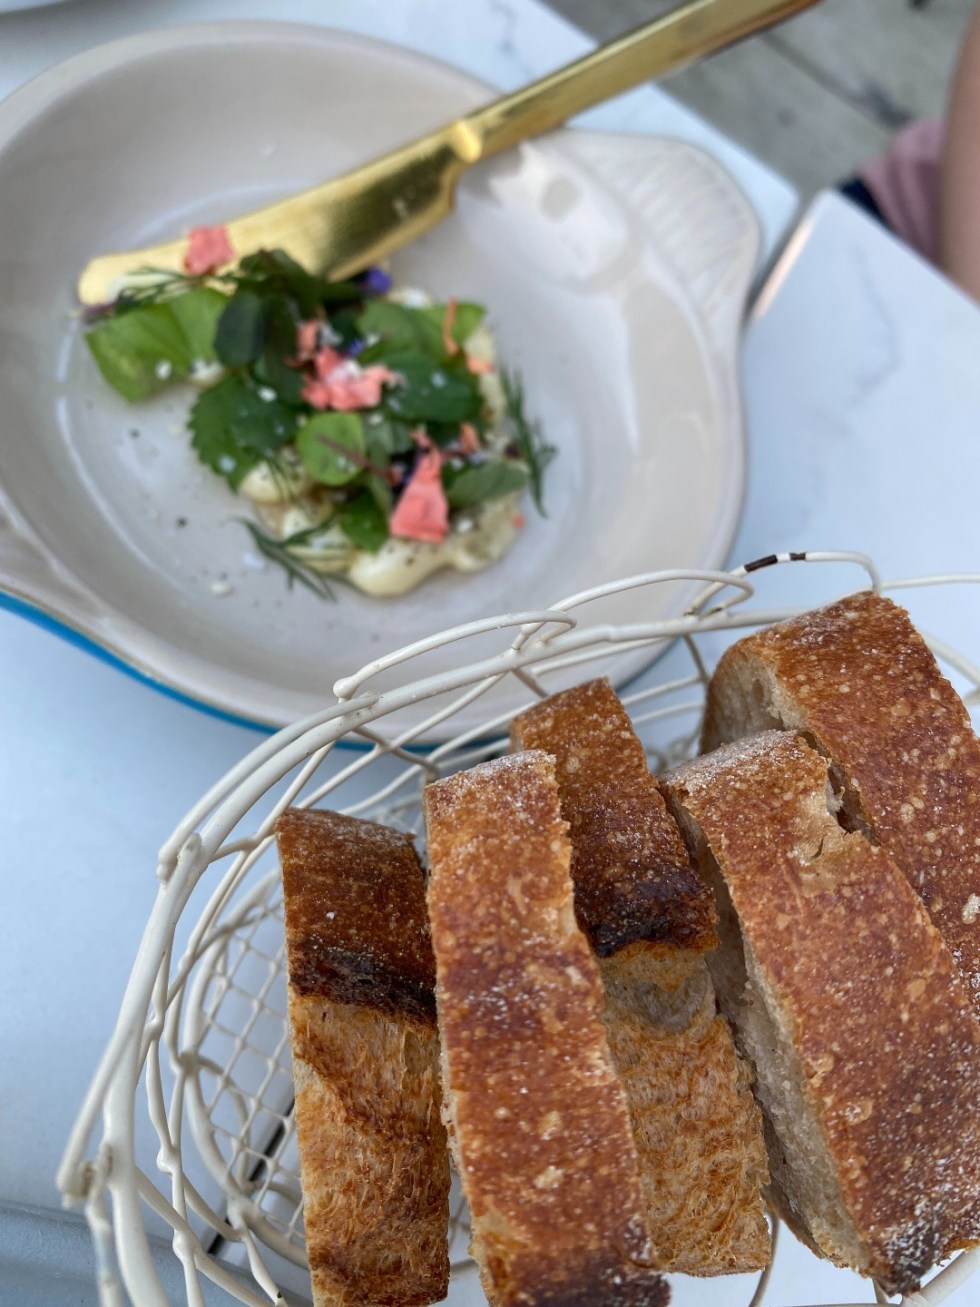 NC Favorites: 5 Warm Restaurants with Patios in the Triangle - I'm Fixin' To - @mbg0112 |Restaurants with Patios in the Triangle by popular NC lifestyle blog, I'm Fixin' To: image of bread in a white wire basket.